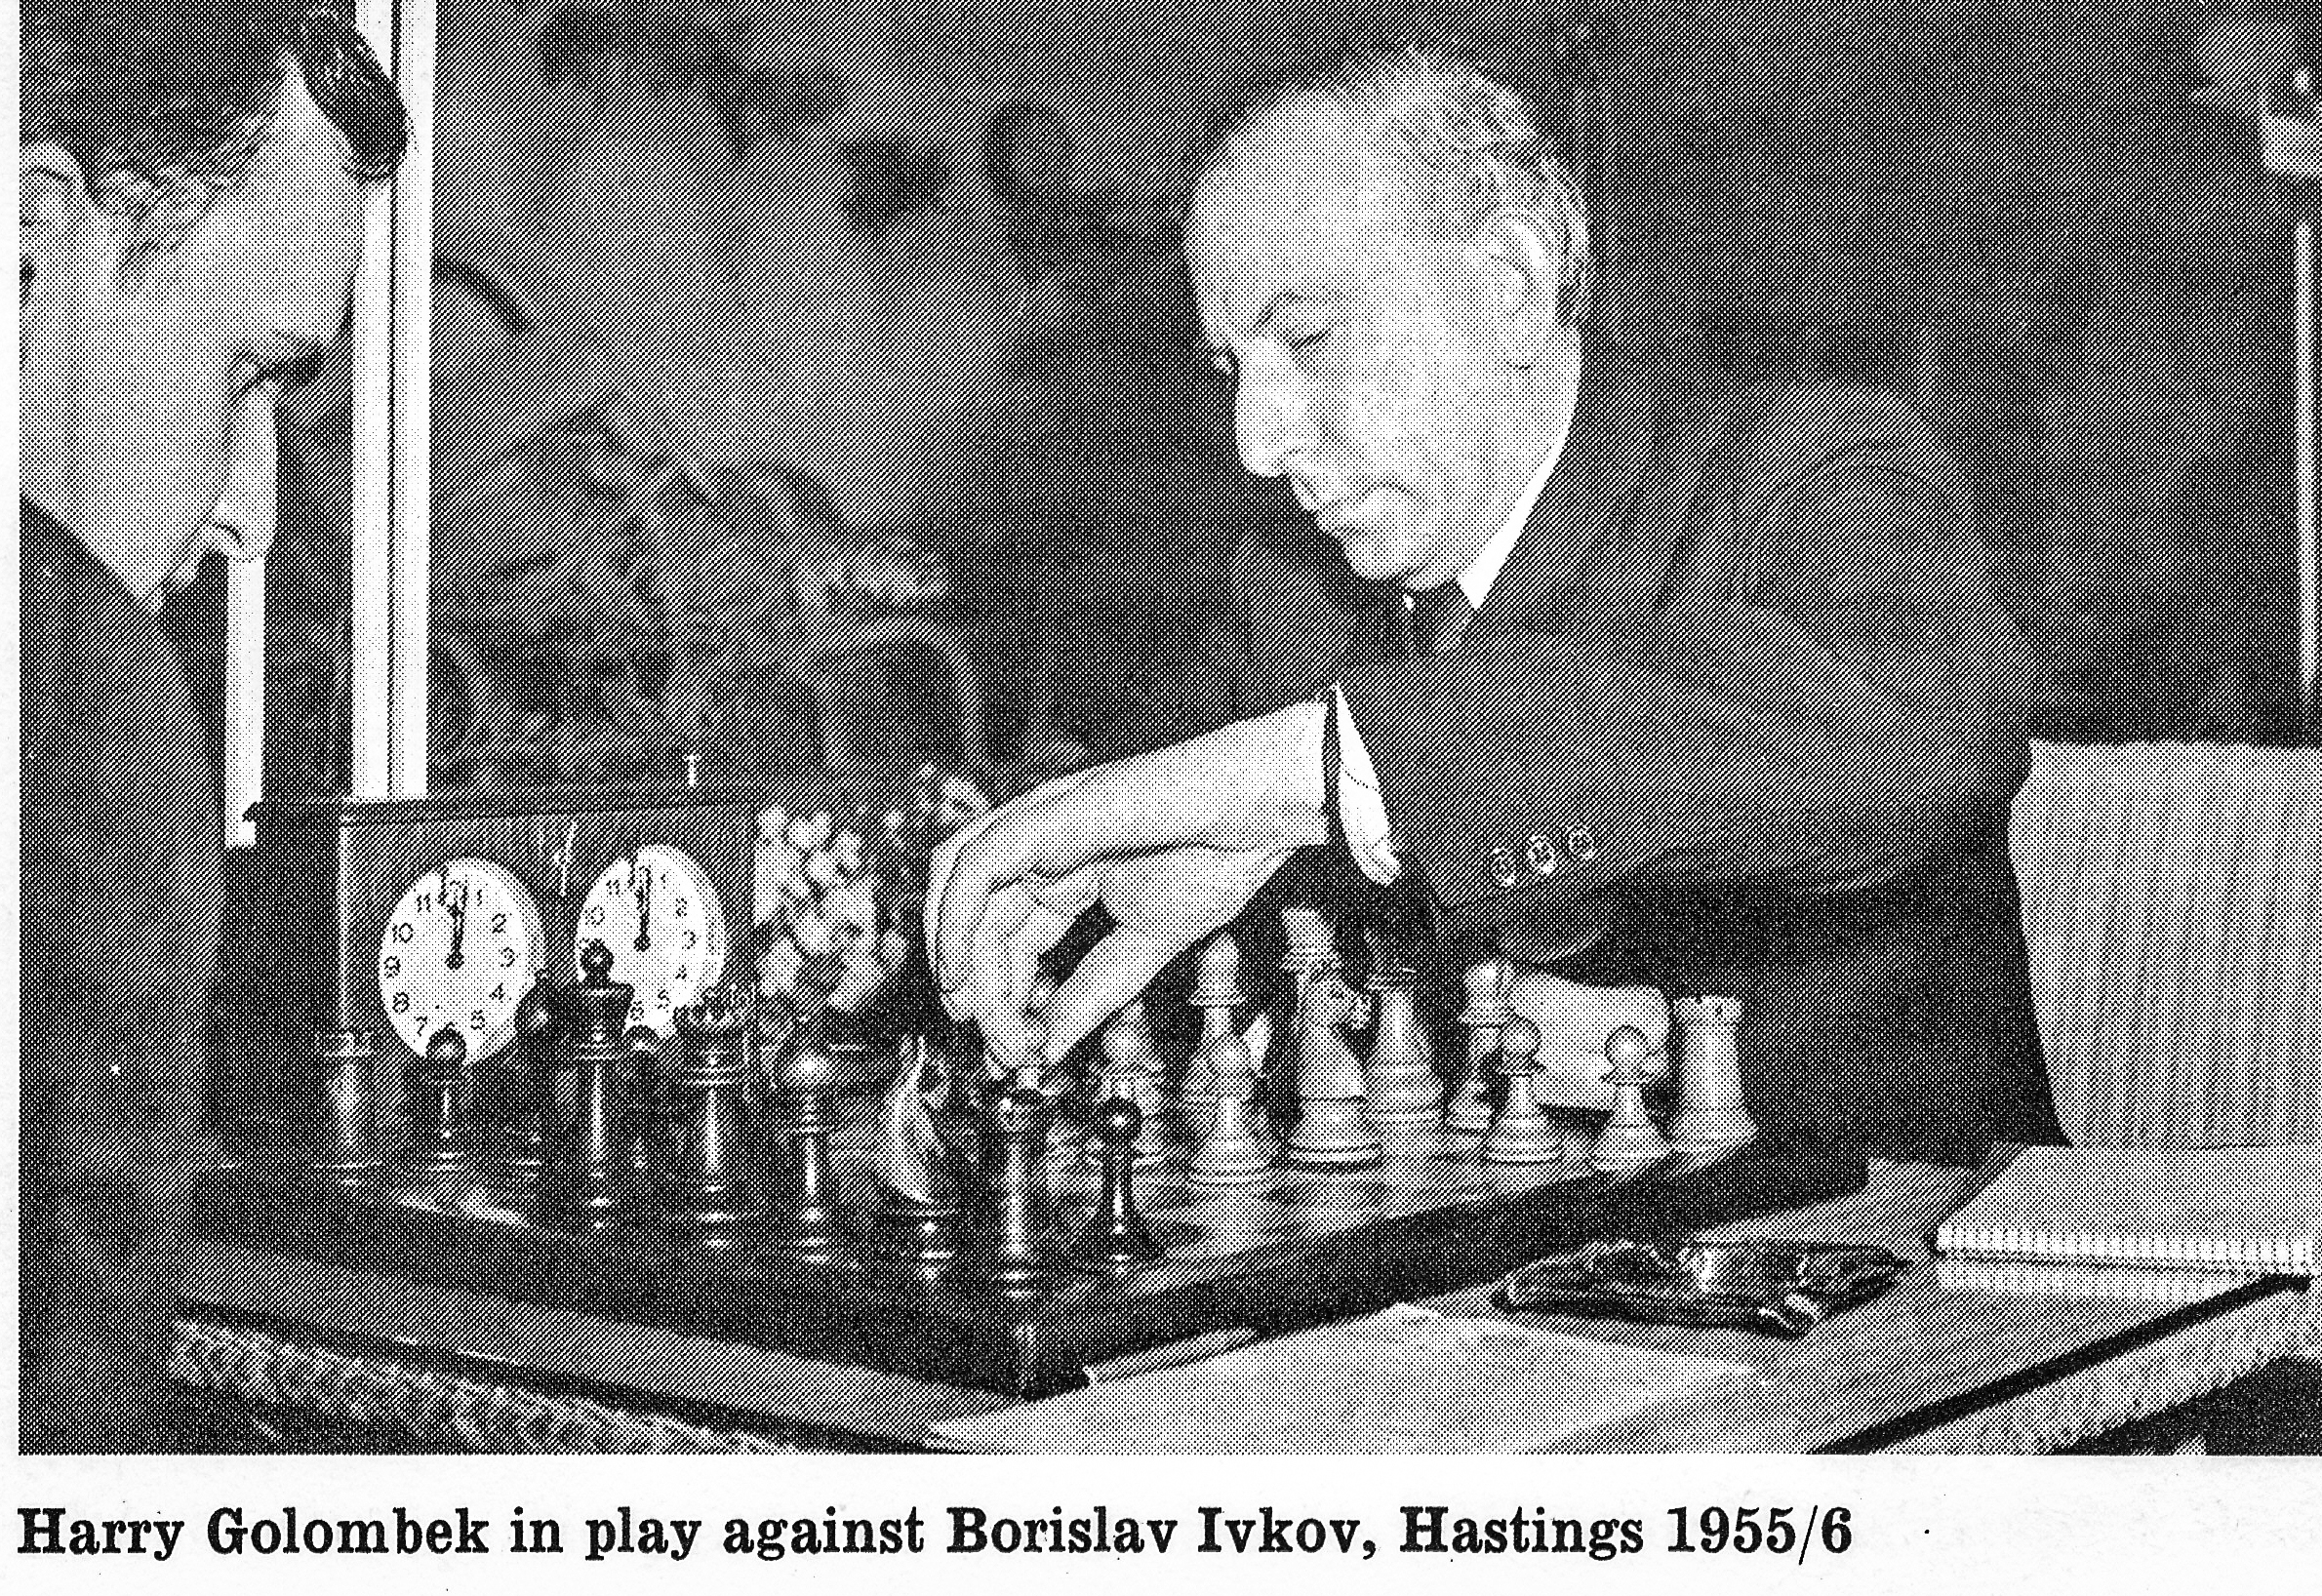 Harry Golombek in play against Borislav Ivkov, Hastings 1955/6.